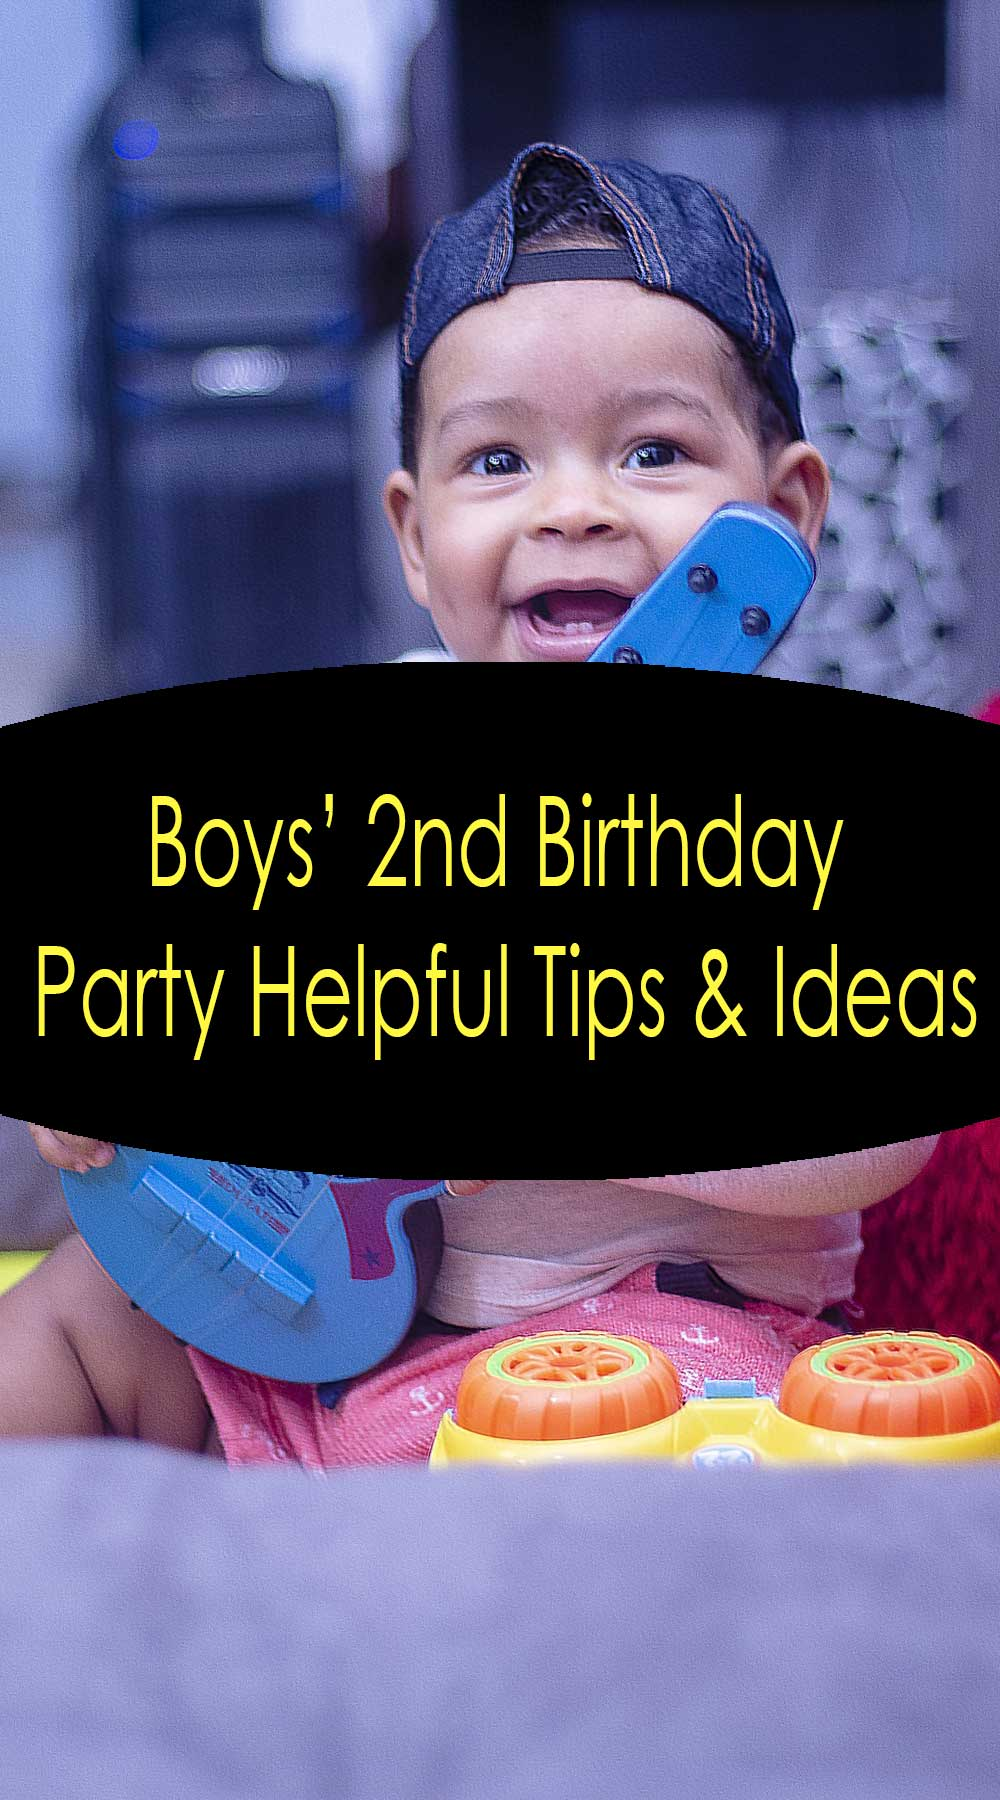 Boys' 2nd Birthday Party Helpful Tips & Ideas